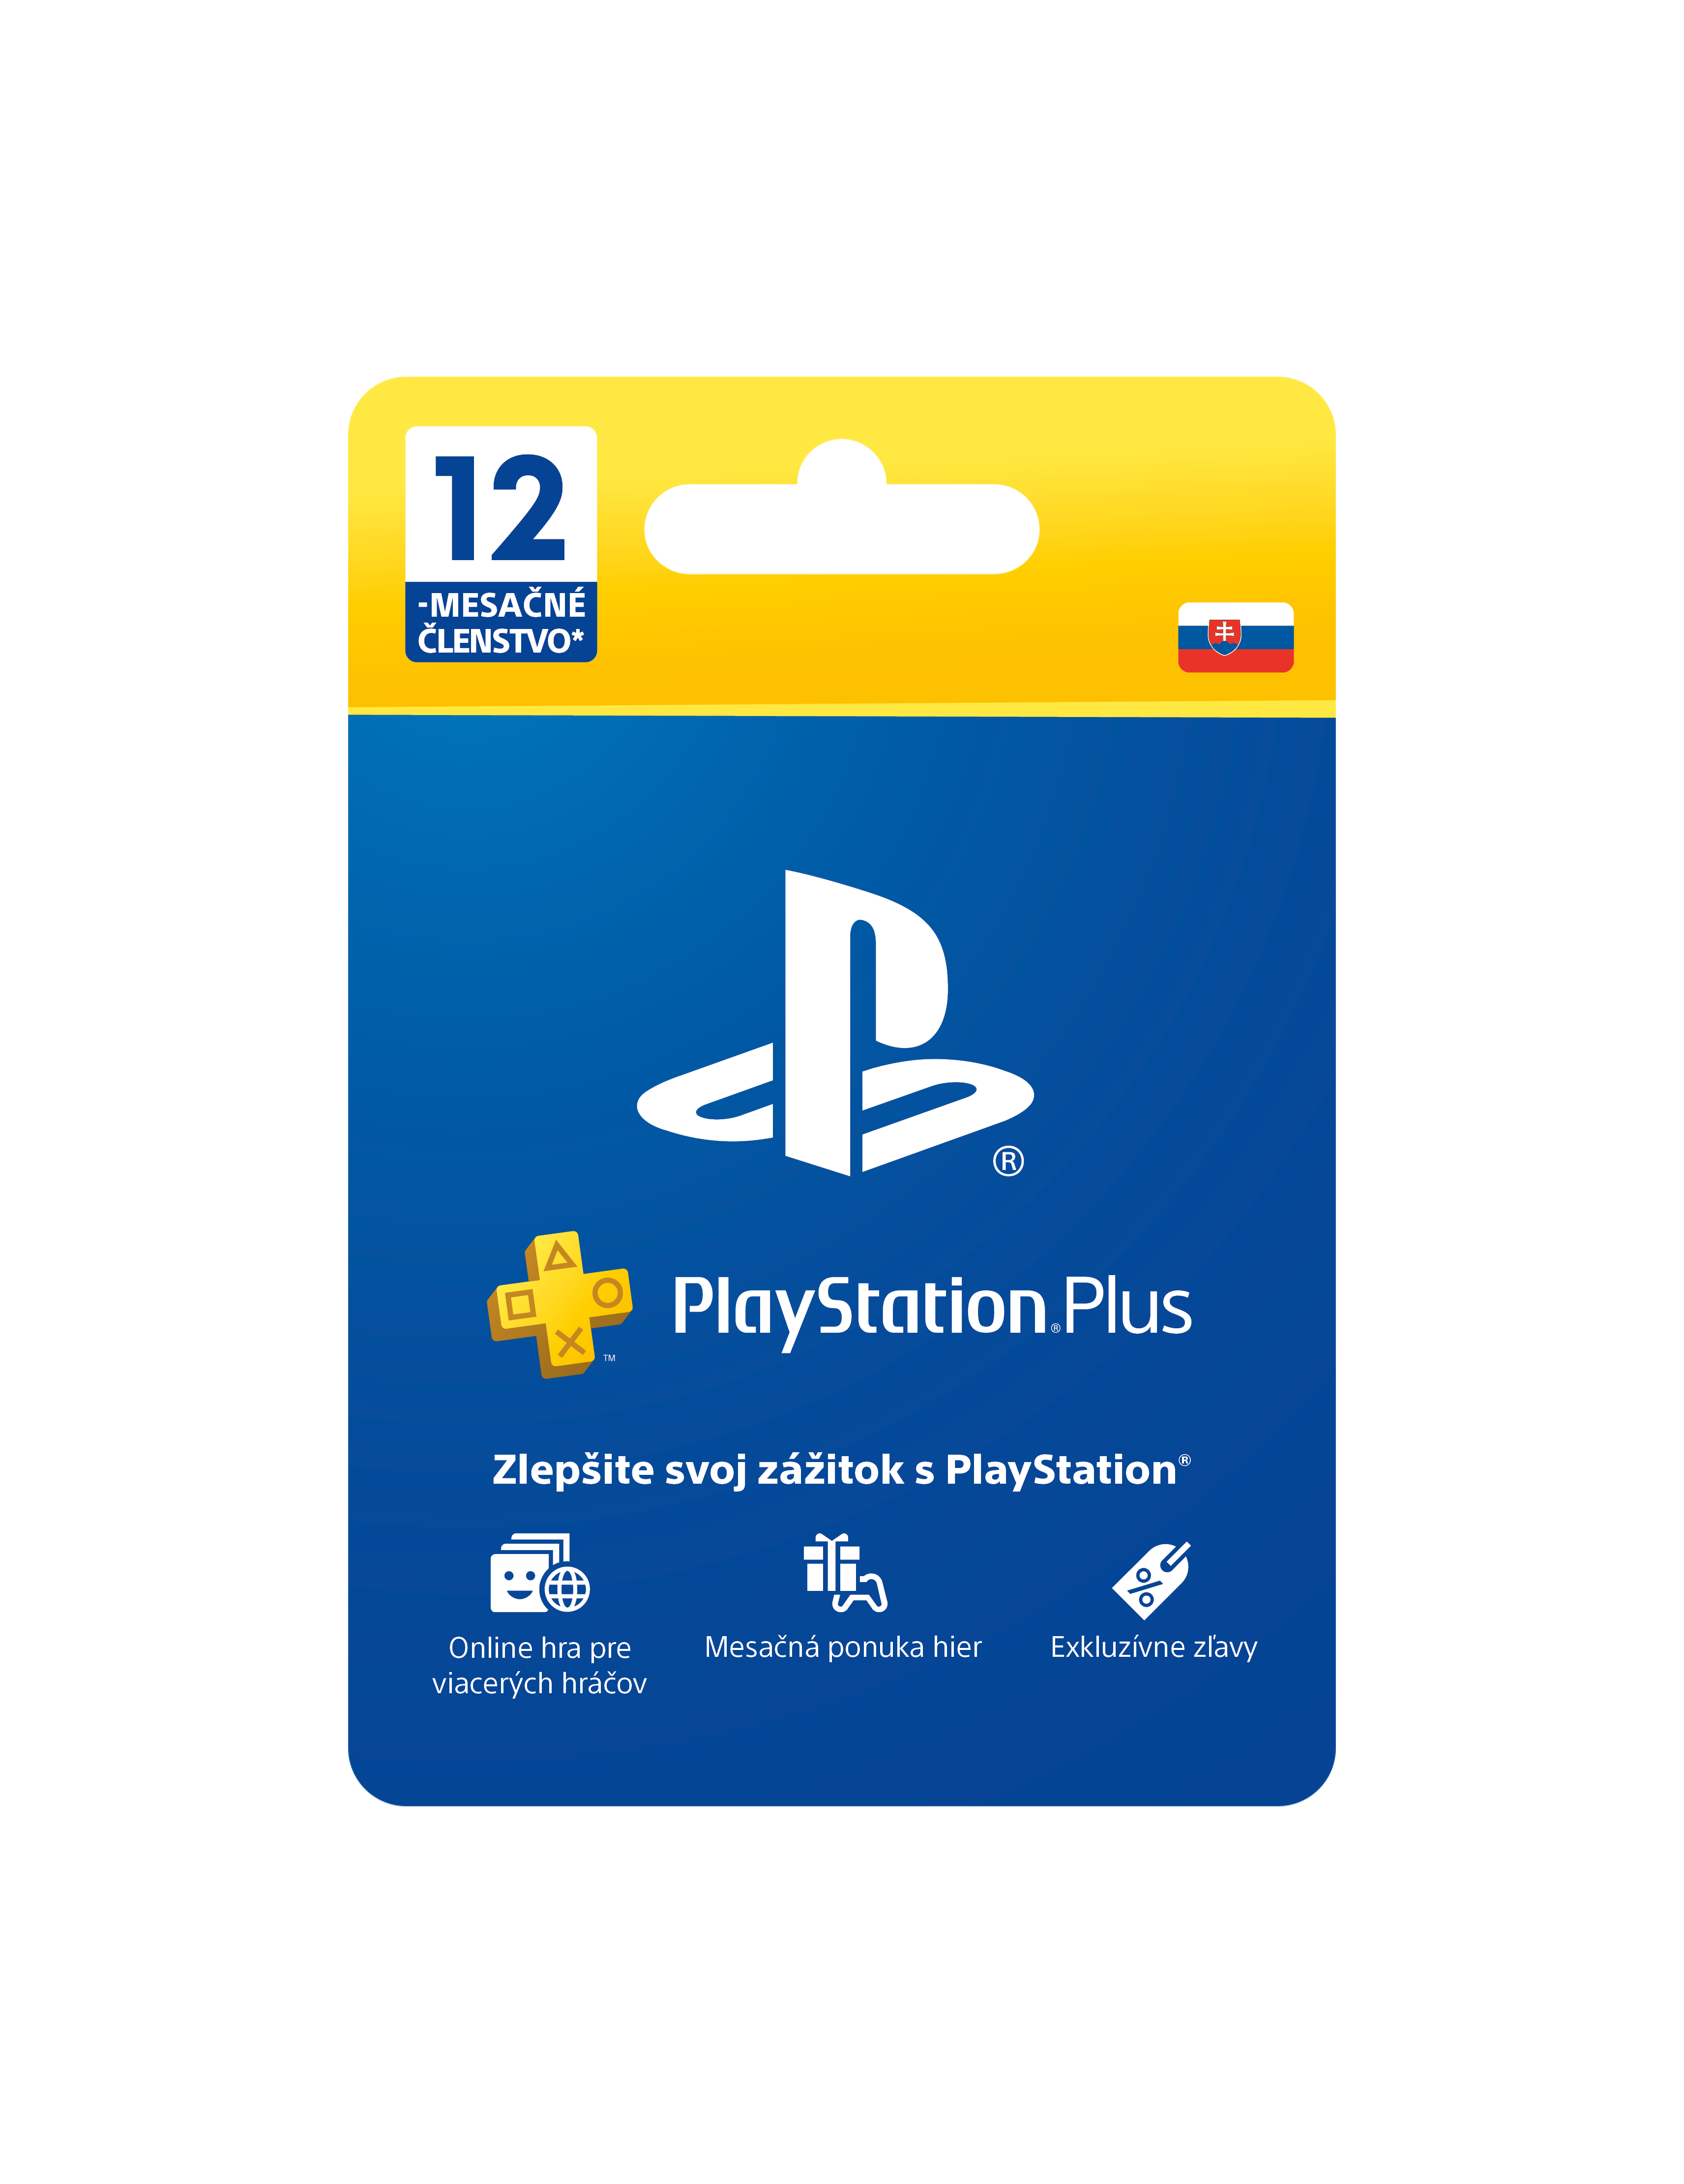 PlayStation Plus Card Hang 365 Day pro SK PS Store - PS719800552